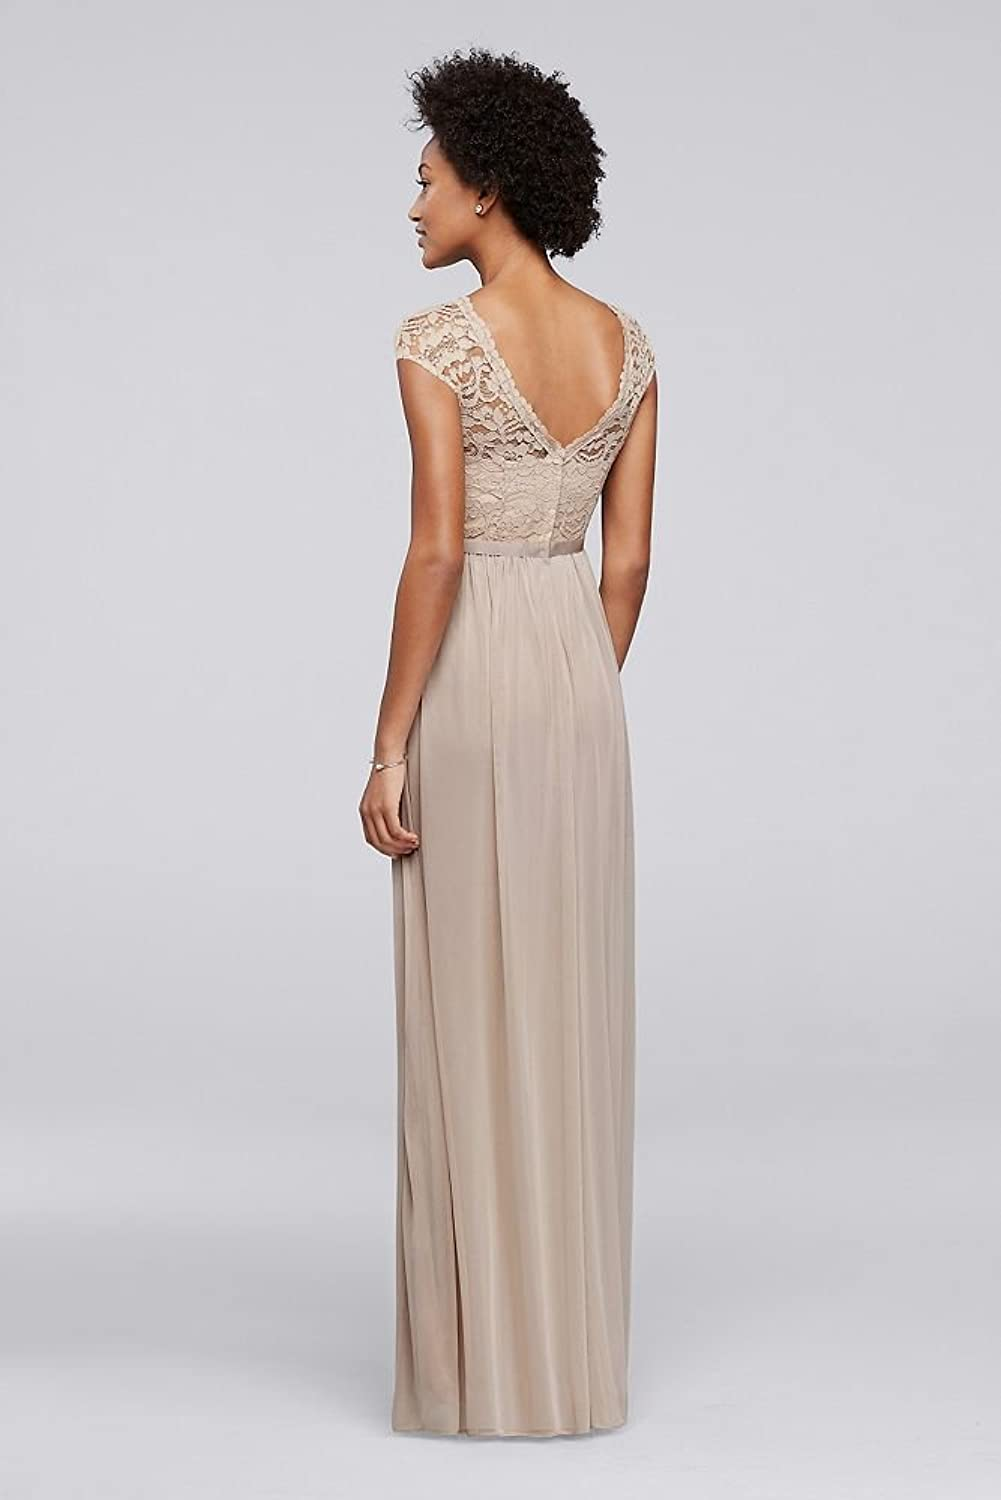 Davids bridal long bridesmaid dress with lace bodice style f19328 davids bridal long bridesmaid dress with lace bodice style f19328 at amazon womens clothing store ombrellifo Gallery